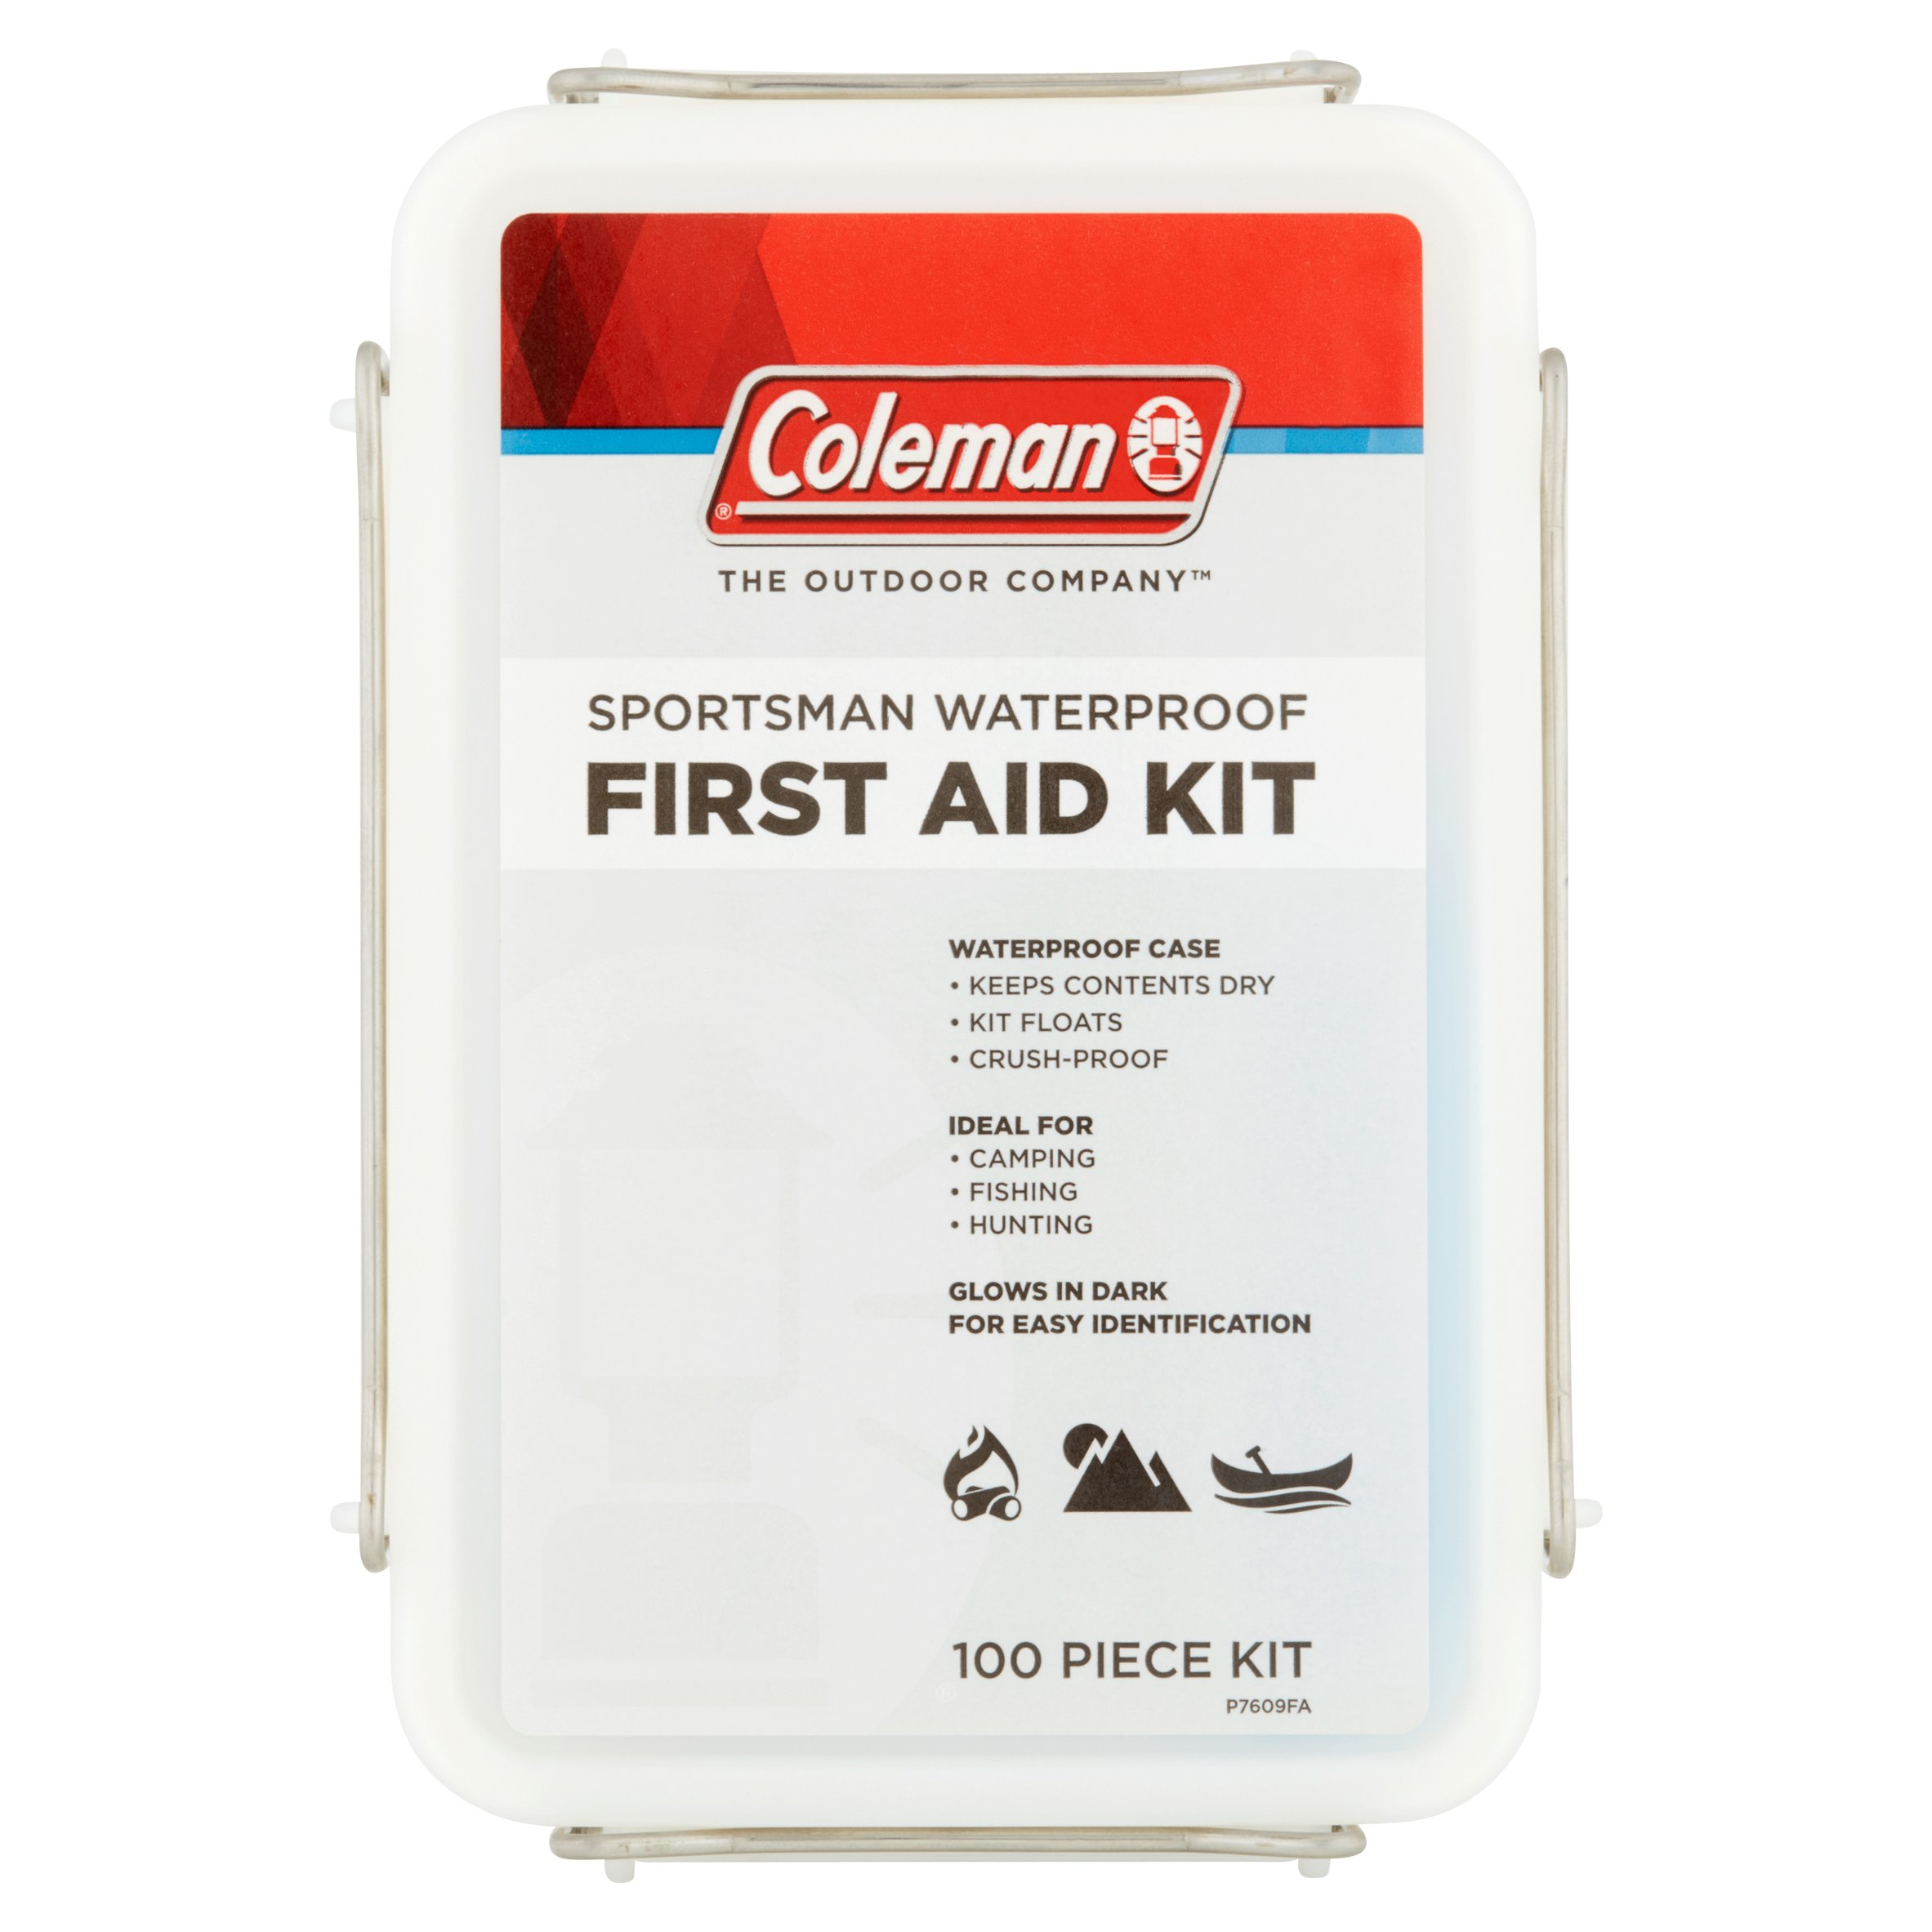 Click here to buy Coleman The Outdoor Company Sportsman Waterproof First Aid Kit 100 Piece Kit by Wisconsin Pharmacal Company, LLC.